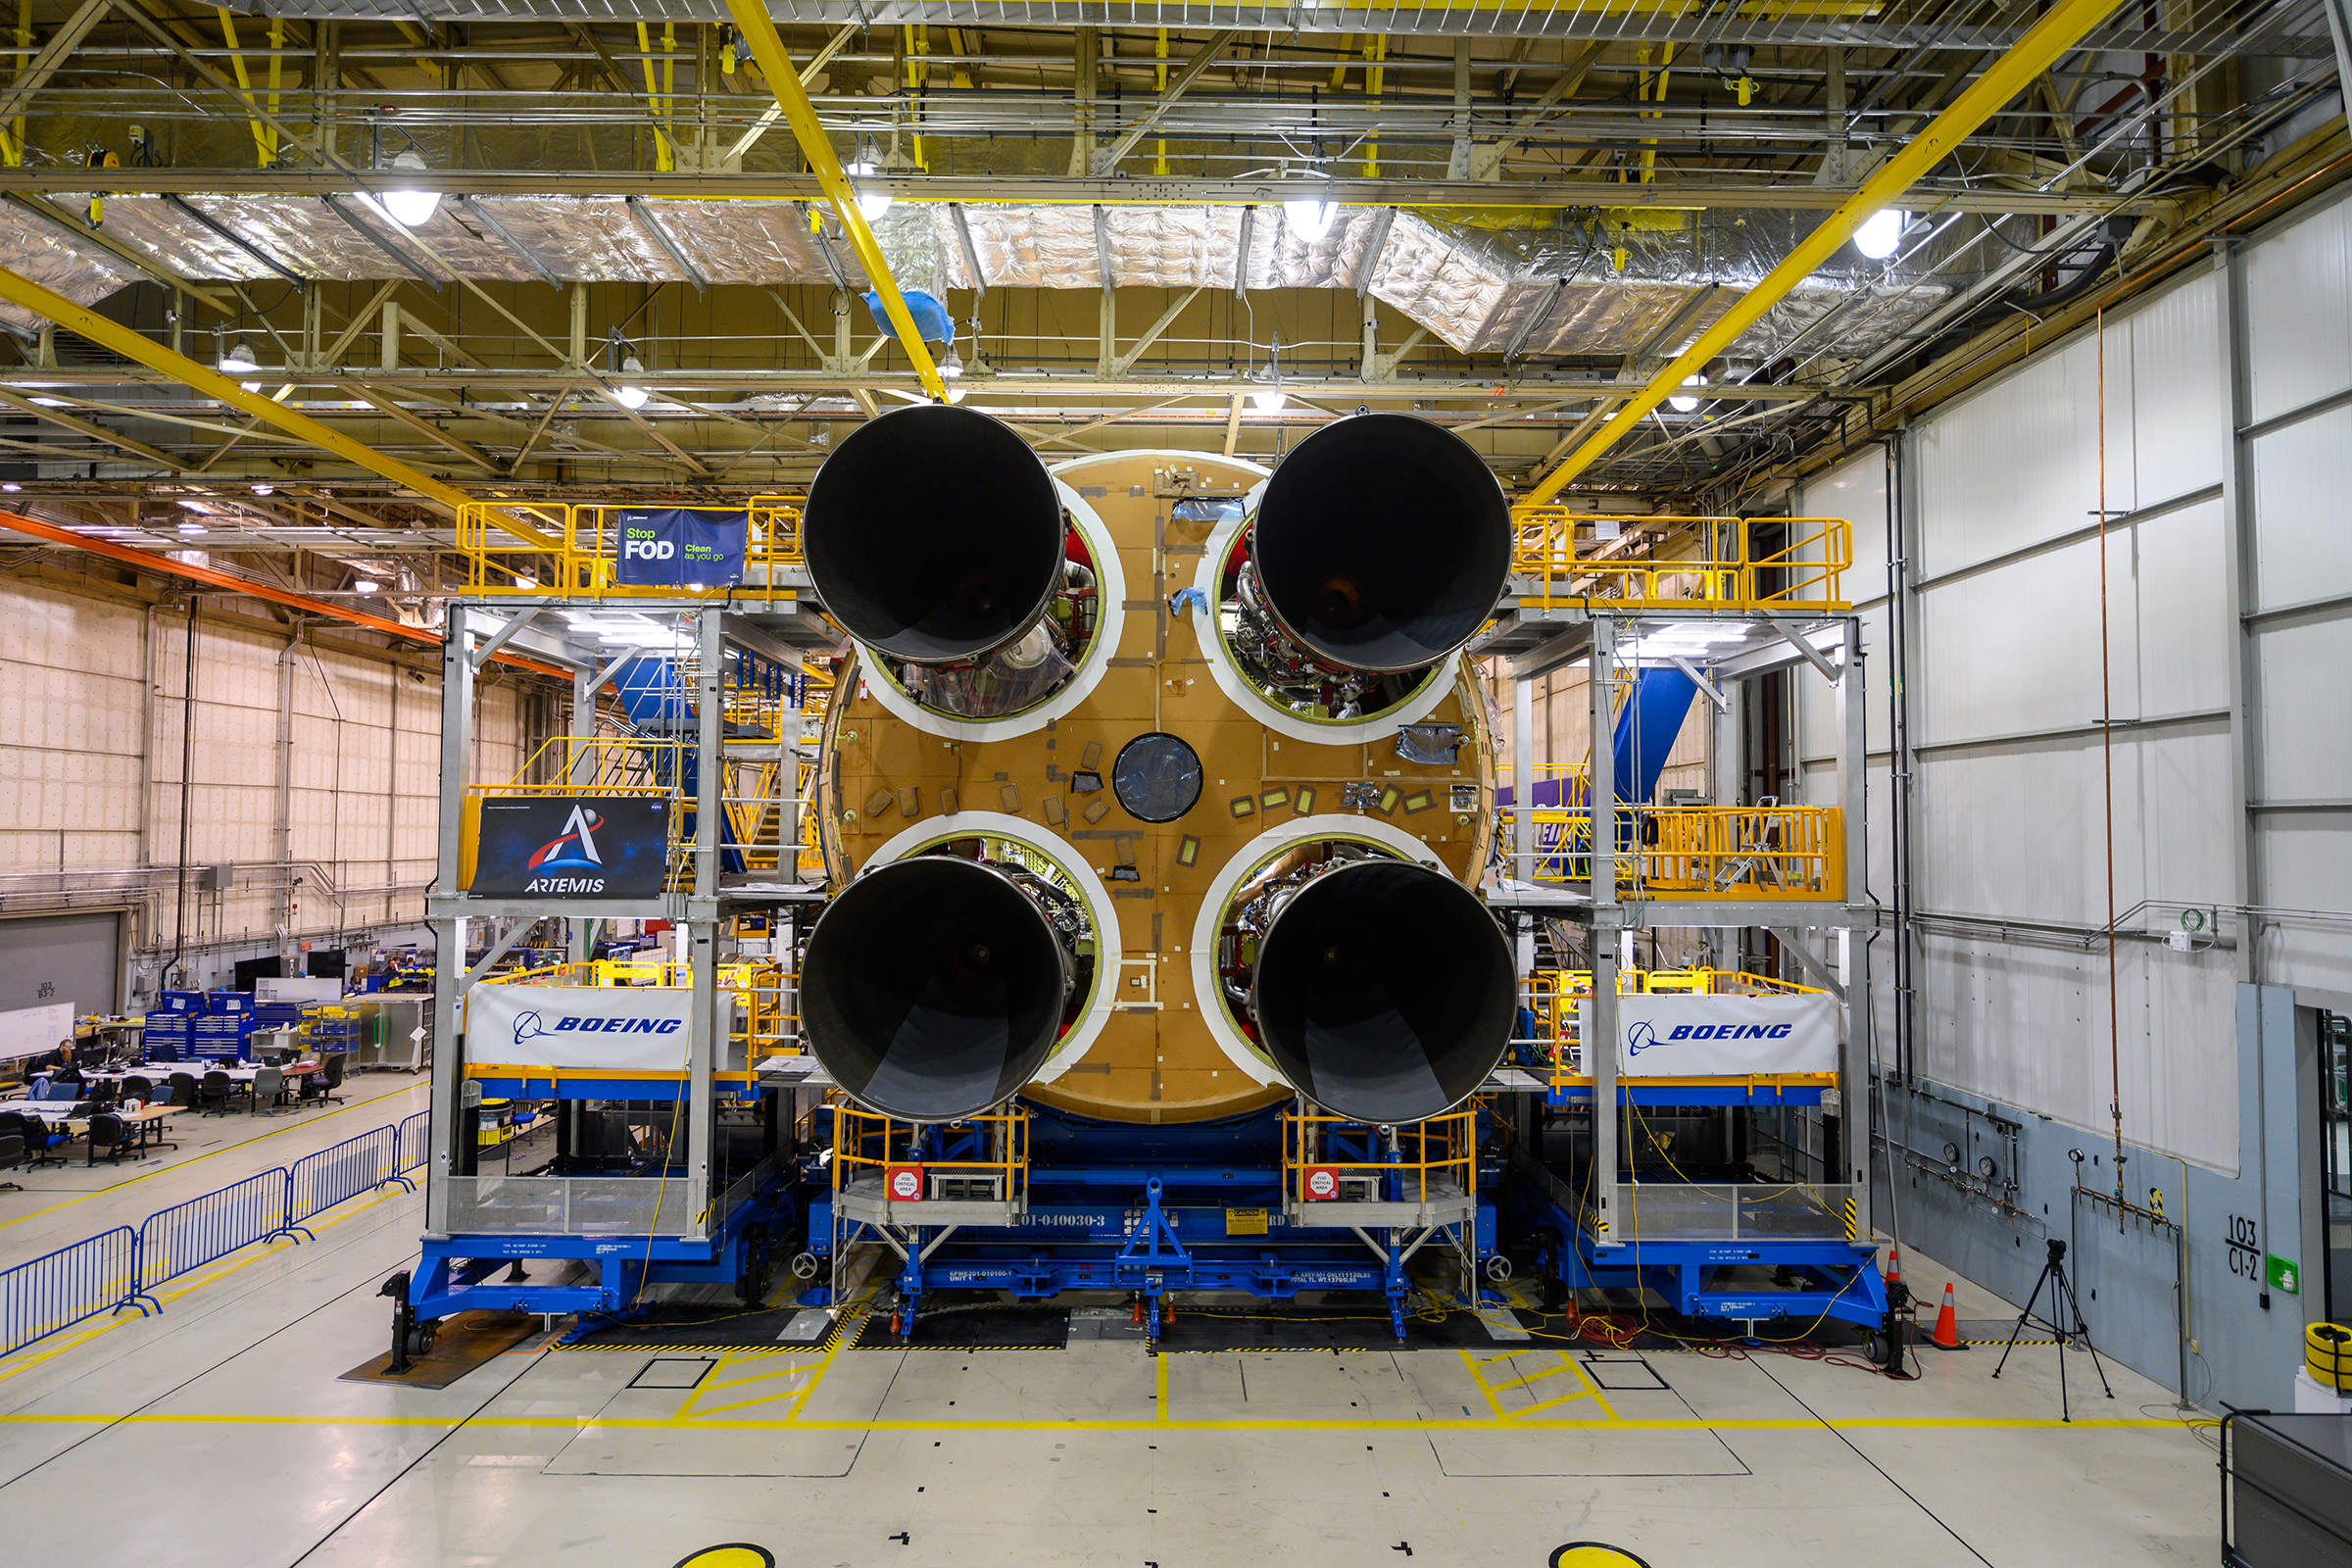 Core stage of NASA's first SLS Moon rocket gets its final engine